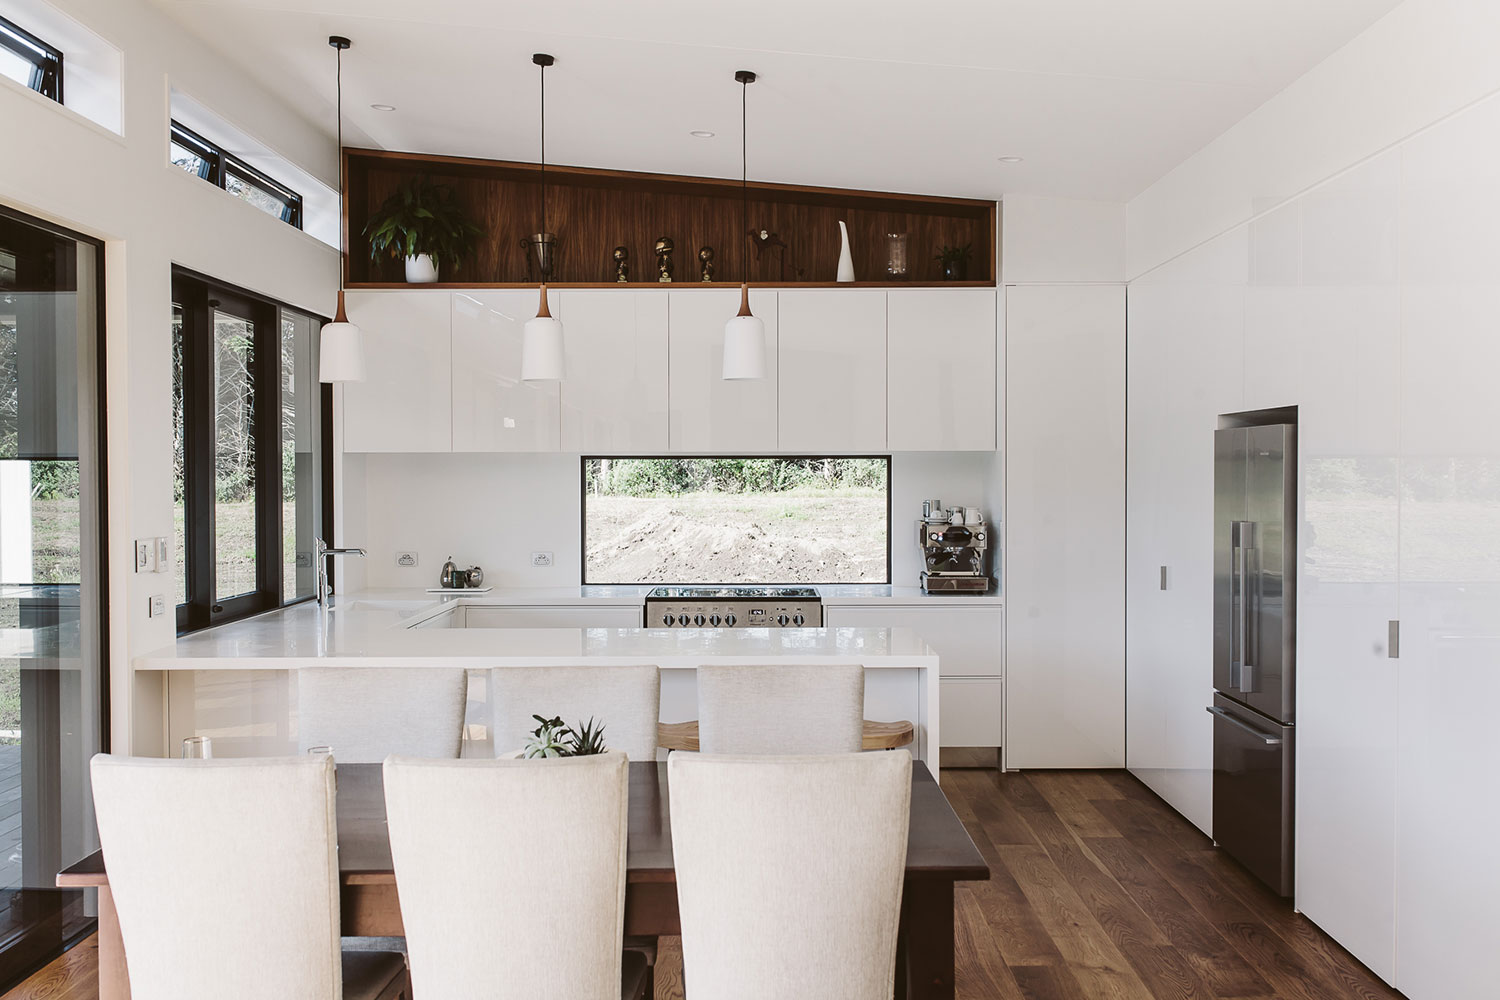 The Latest Kitchen Material Trends To Inspire Your Dream Renovation Viva